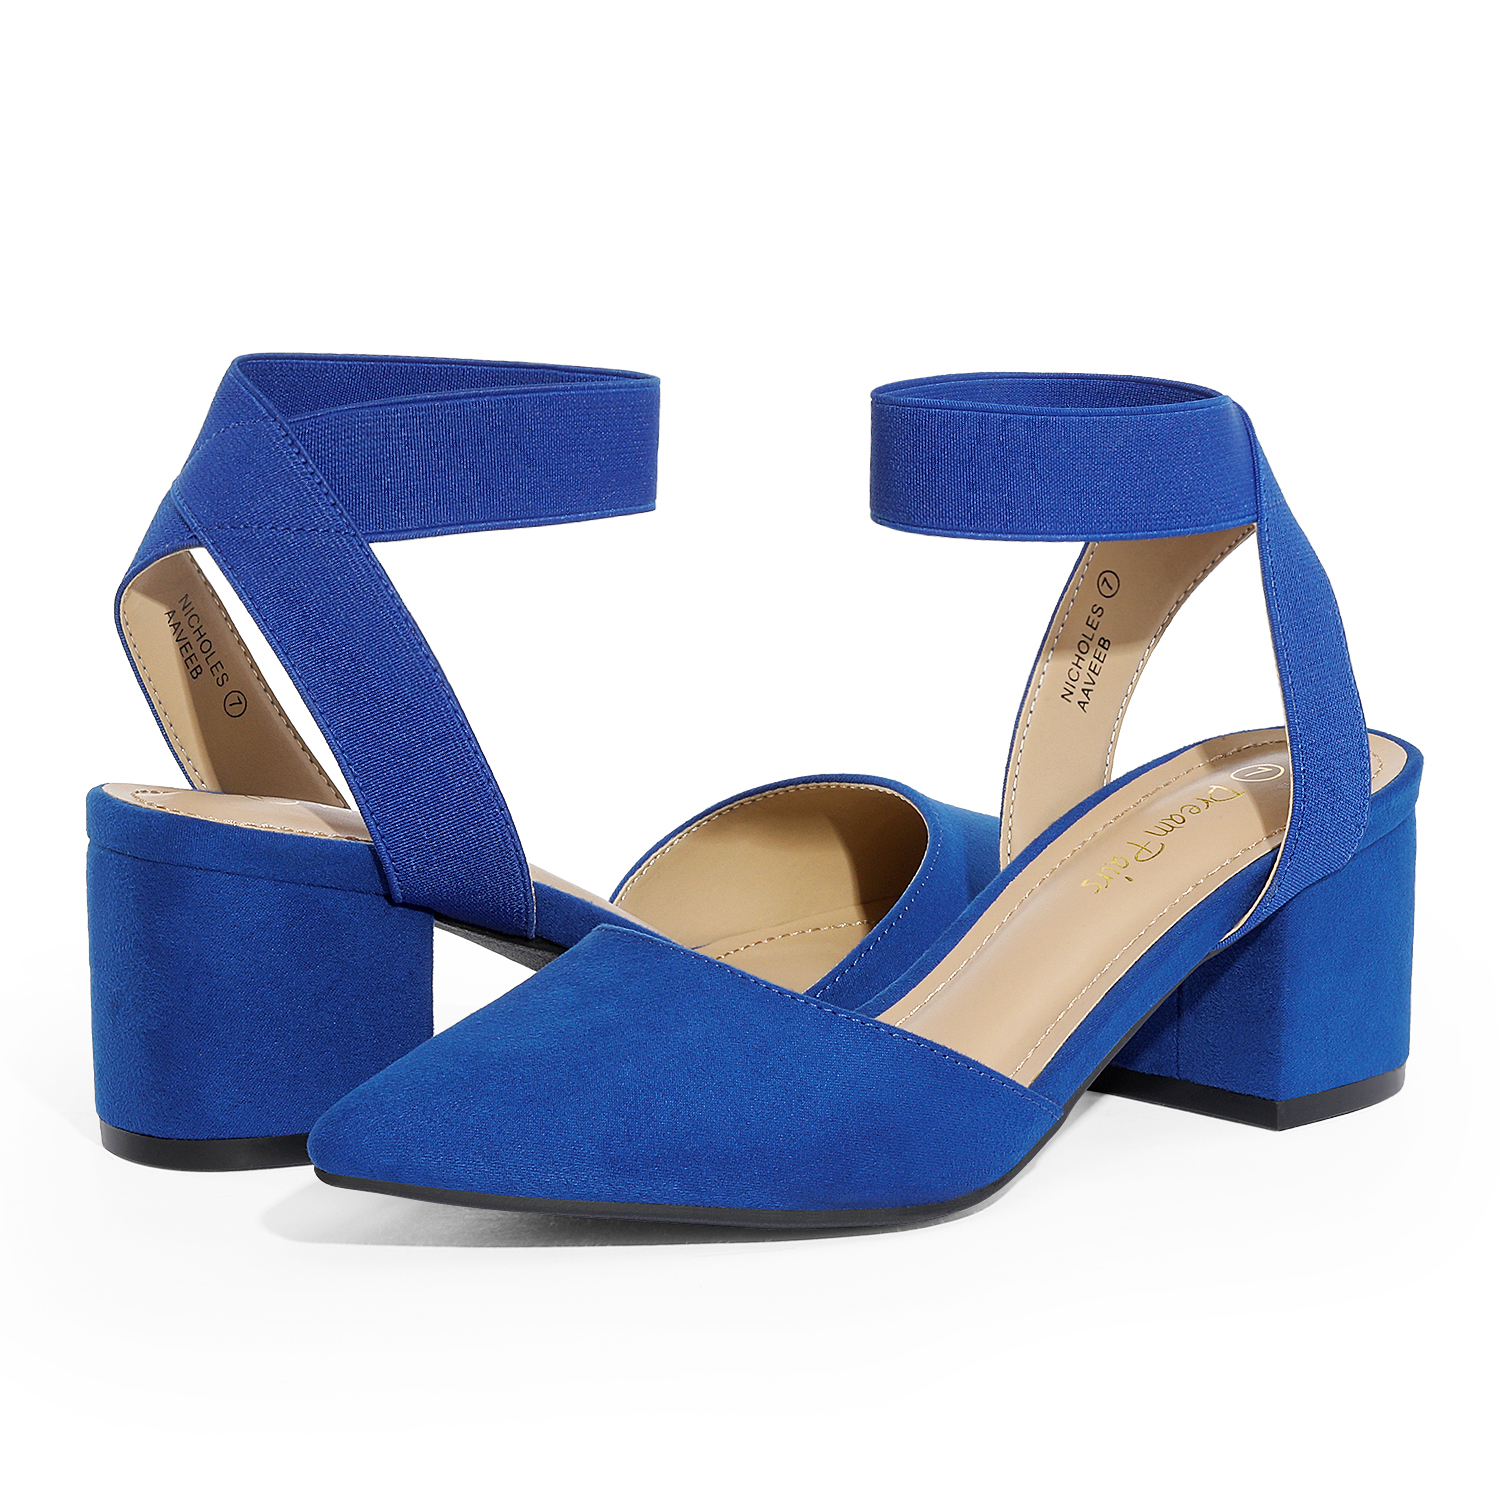 thumbnail 63 - Women-039-s-Elastic-Ankle-Strap-Pointed-Toe-Pump-Shoes-Low-Chunky-Heel-Dress-Pumps